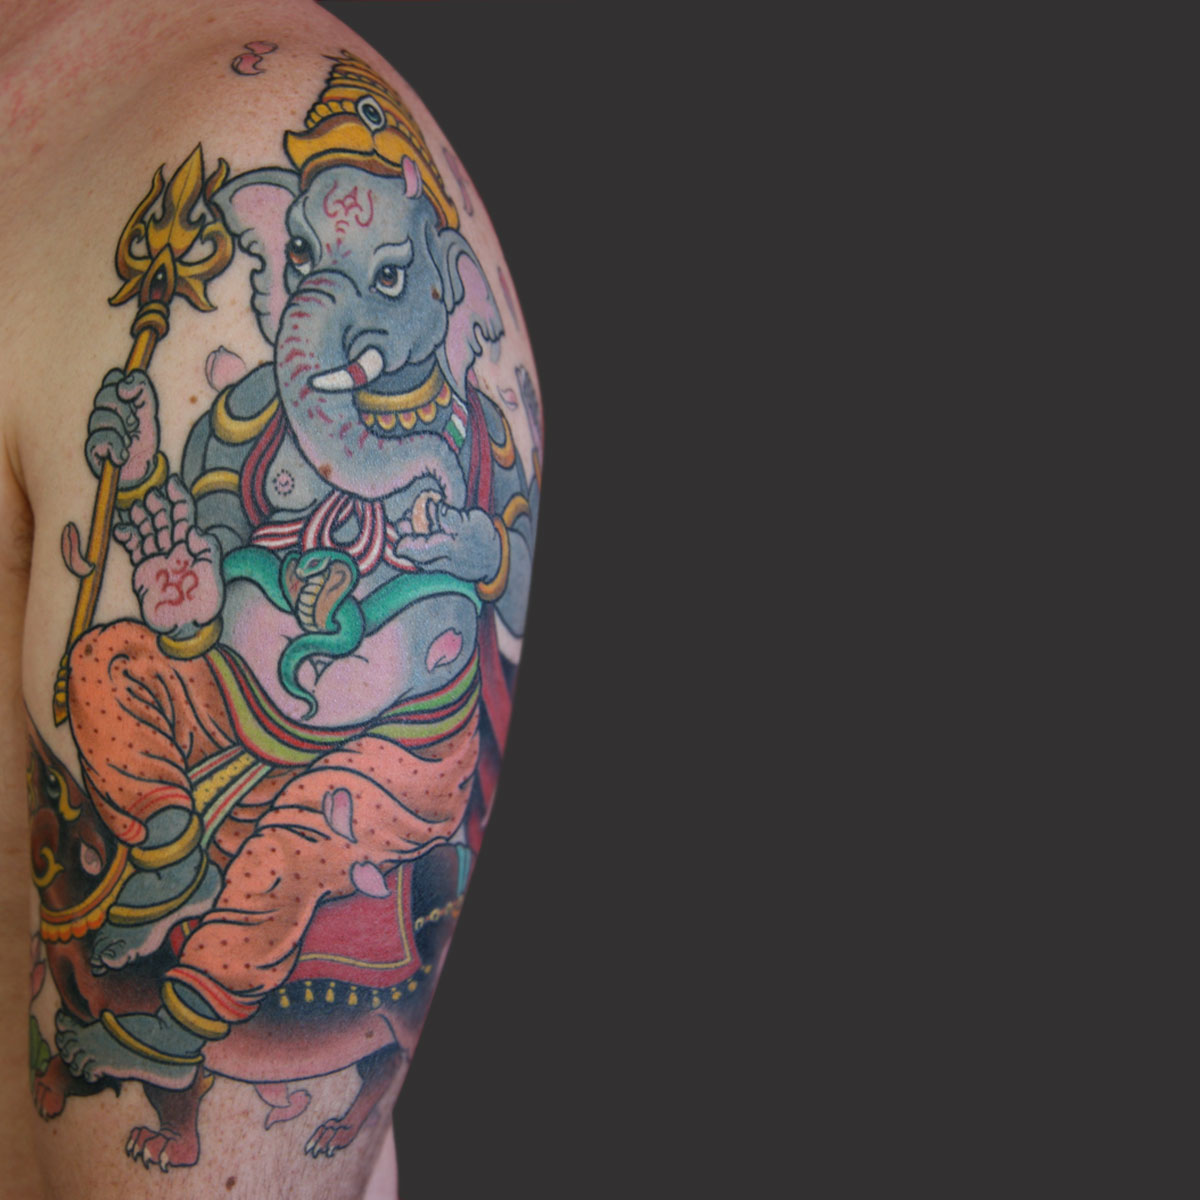 rock-of-ages-tattoo-josh-ganesh